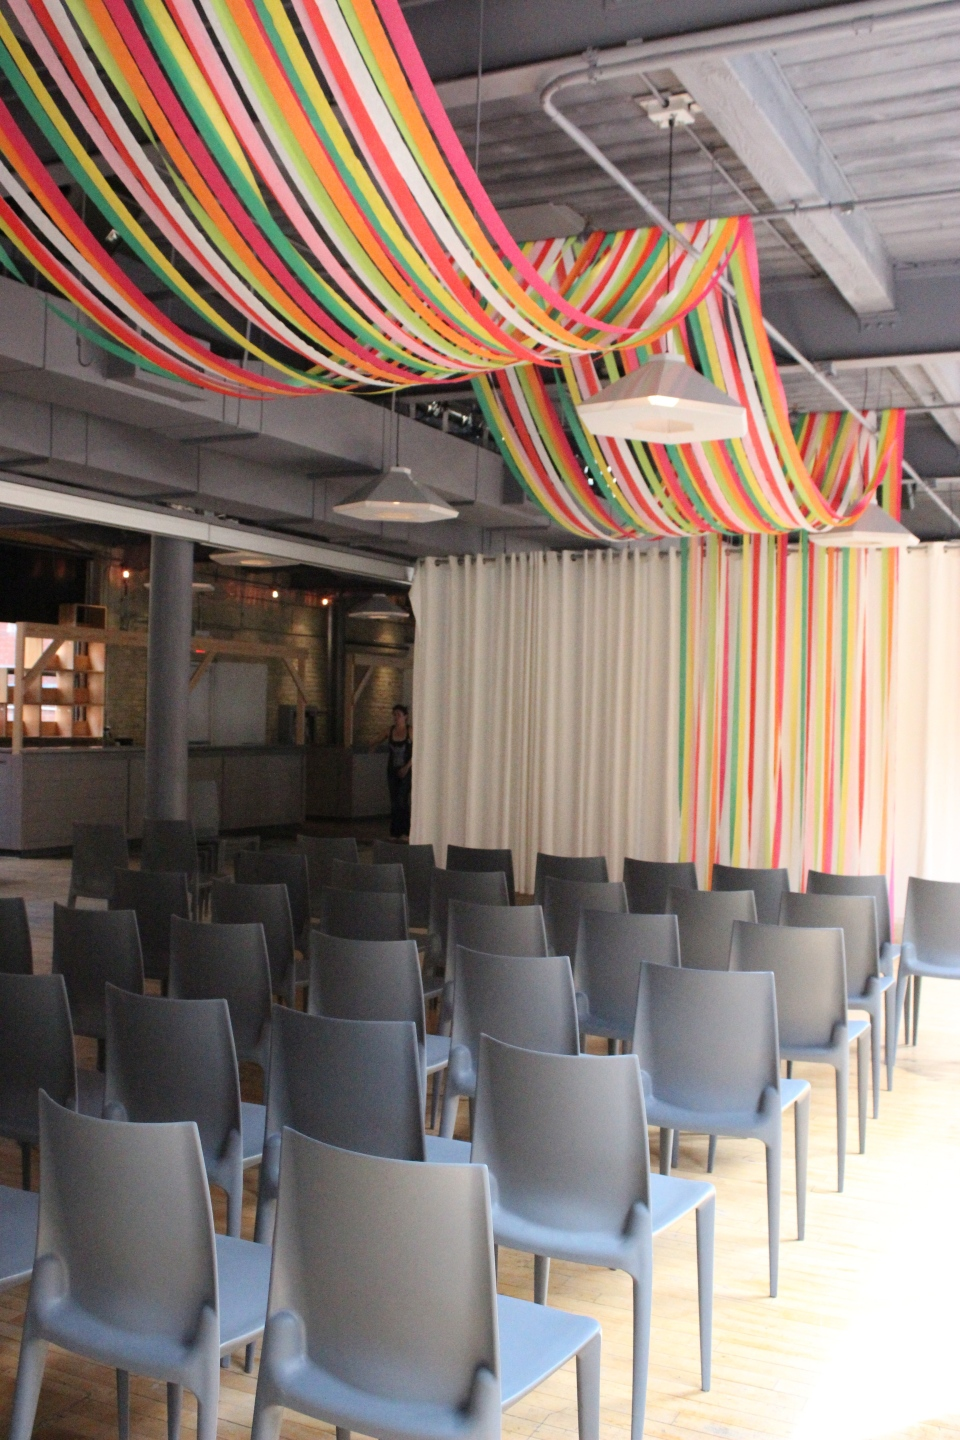 Colourful Crepe Paper Ceiling Drape at 2nd Floor Events